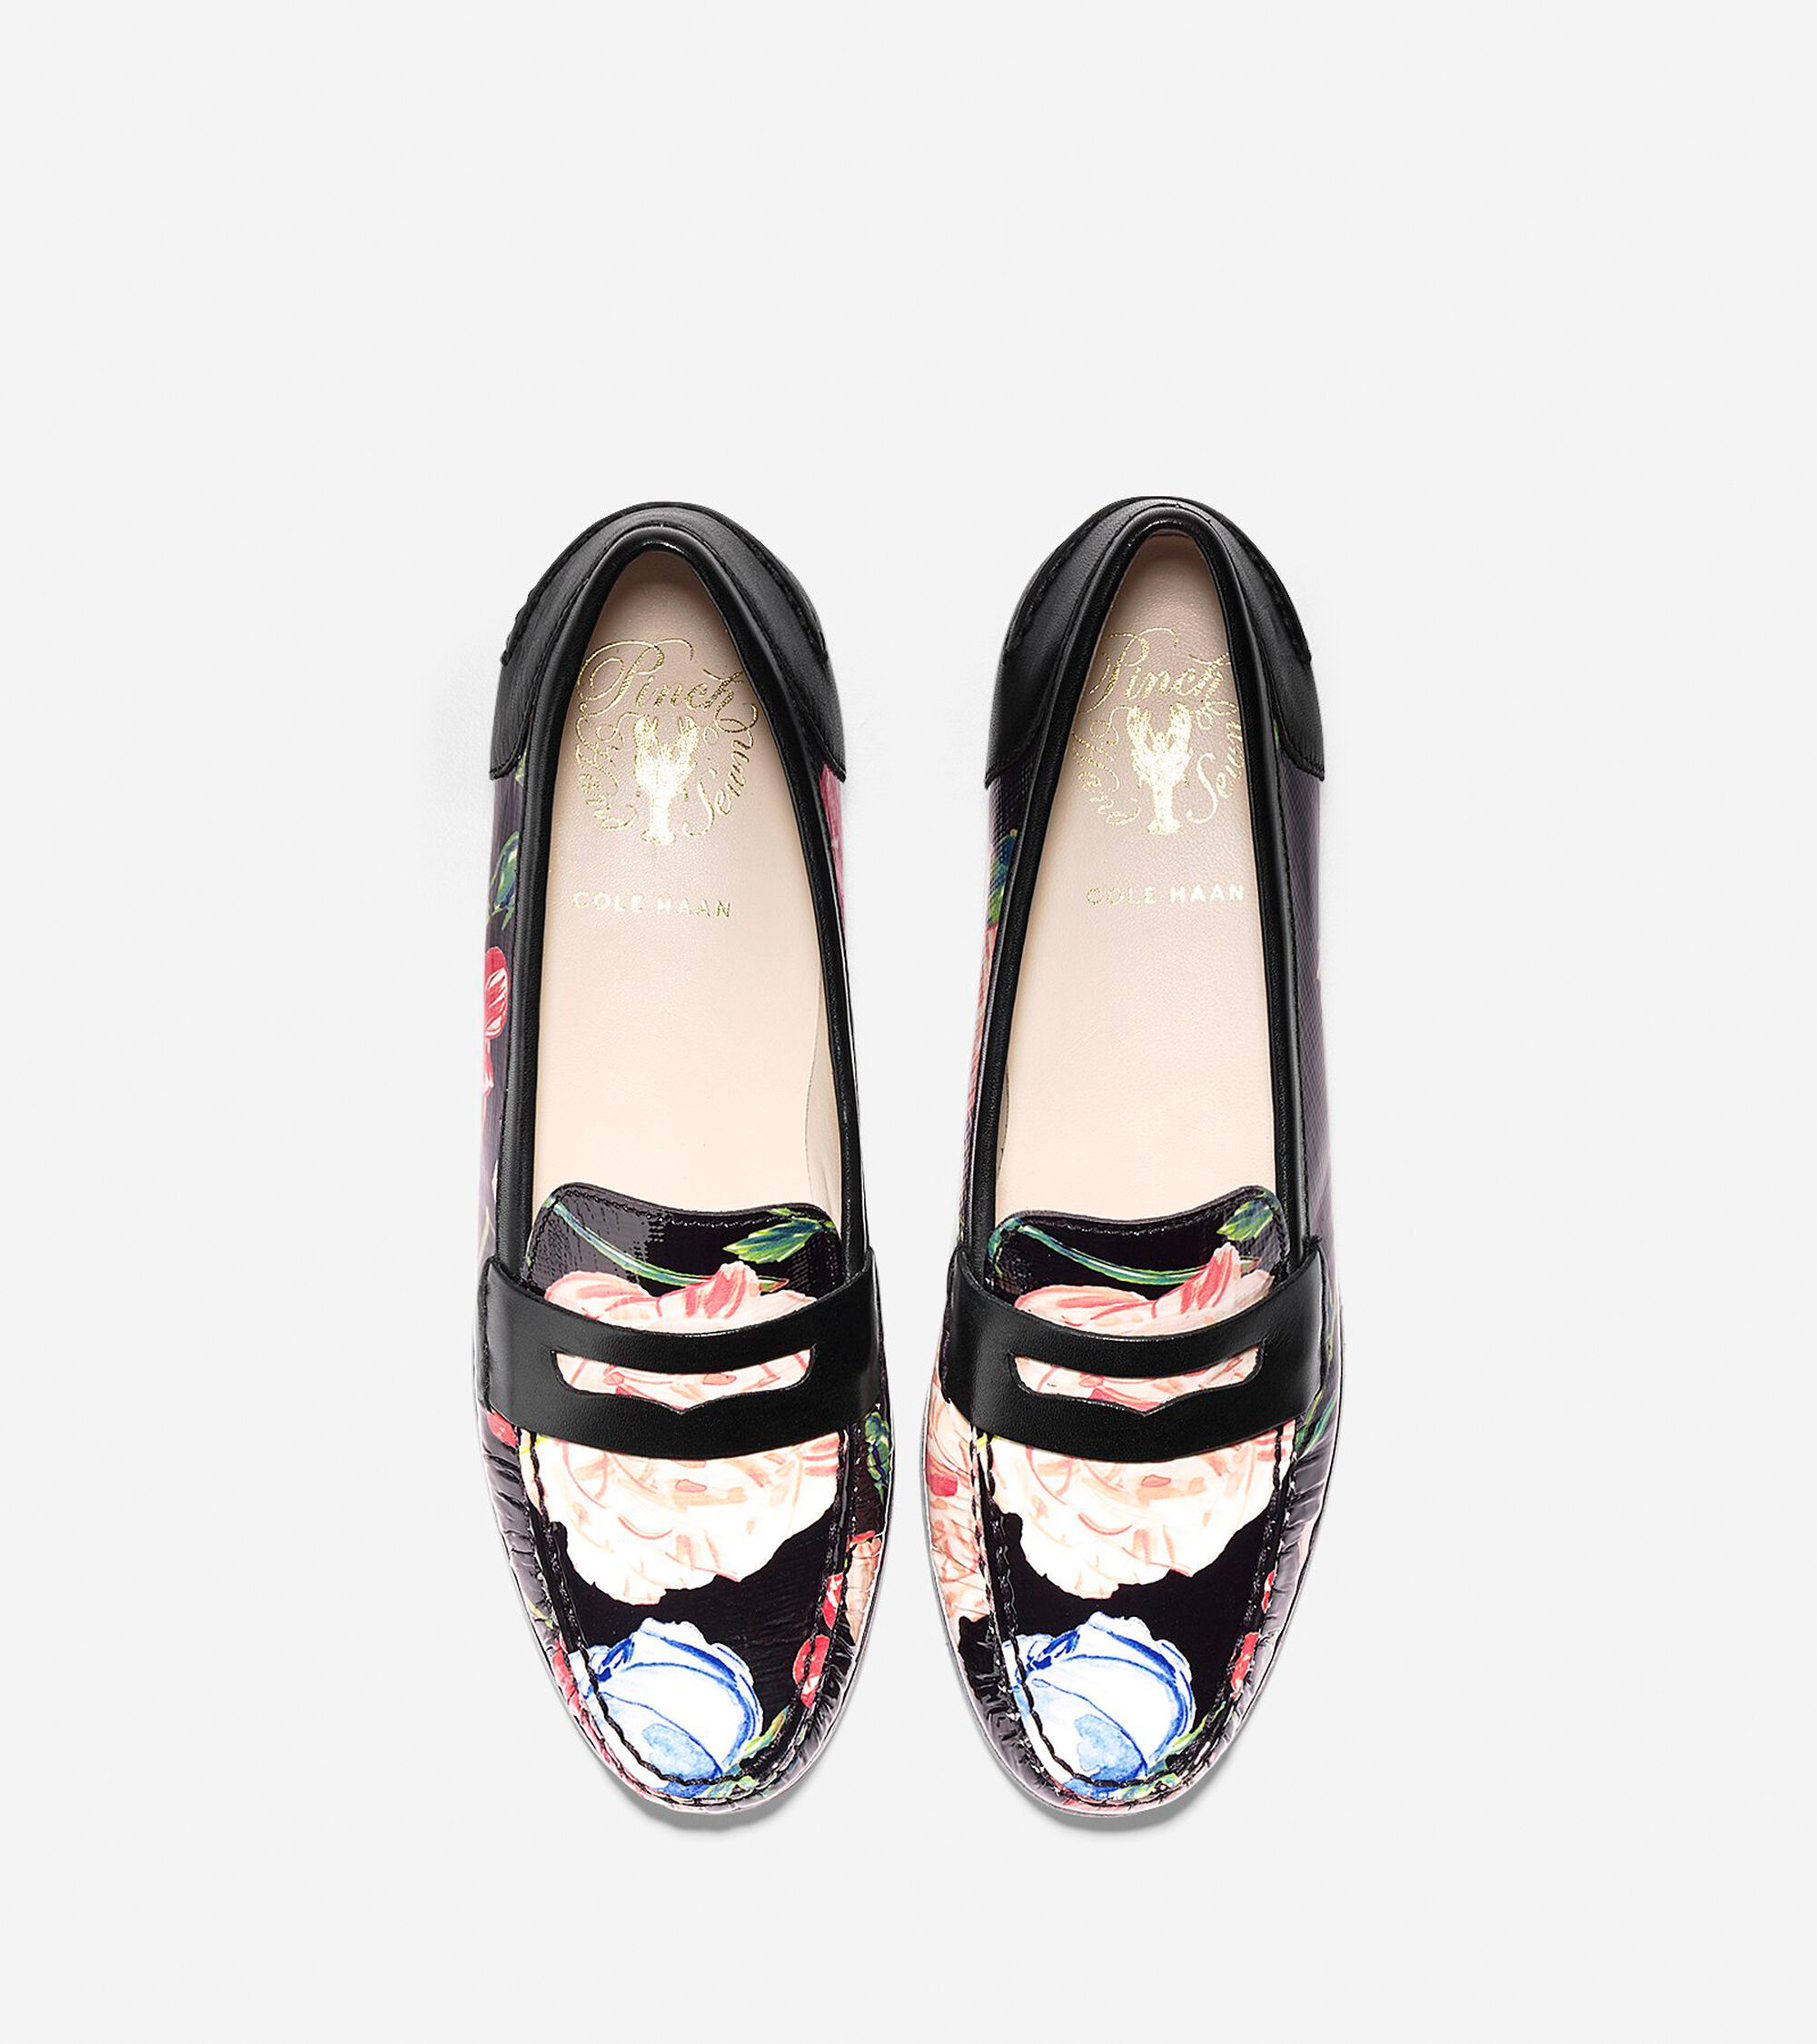 c1c5e07dbd6 Pinch Grand Penny Loafers in Fearless Floral